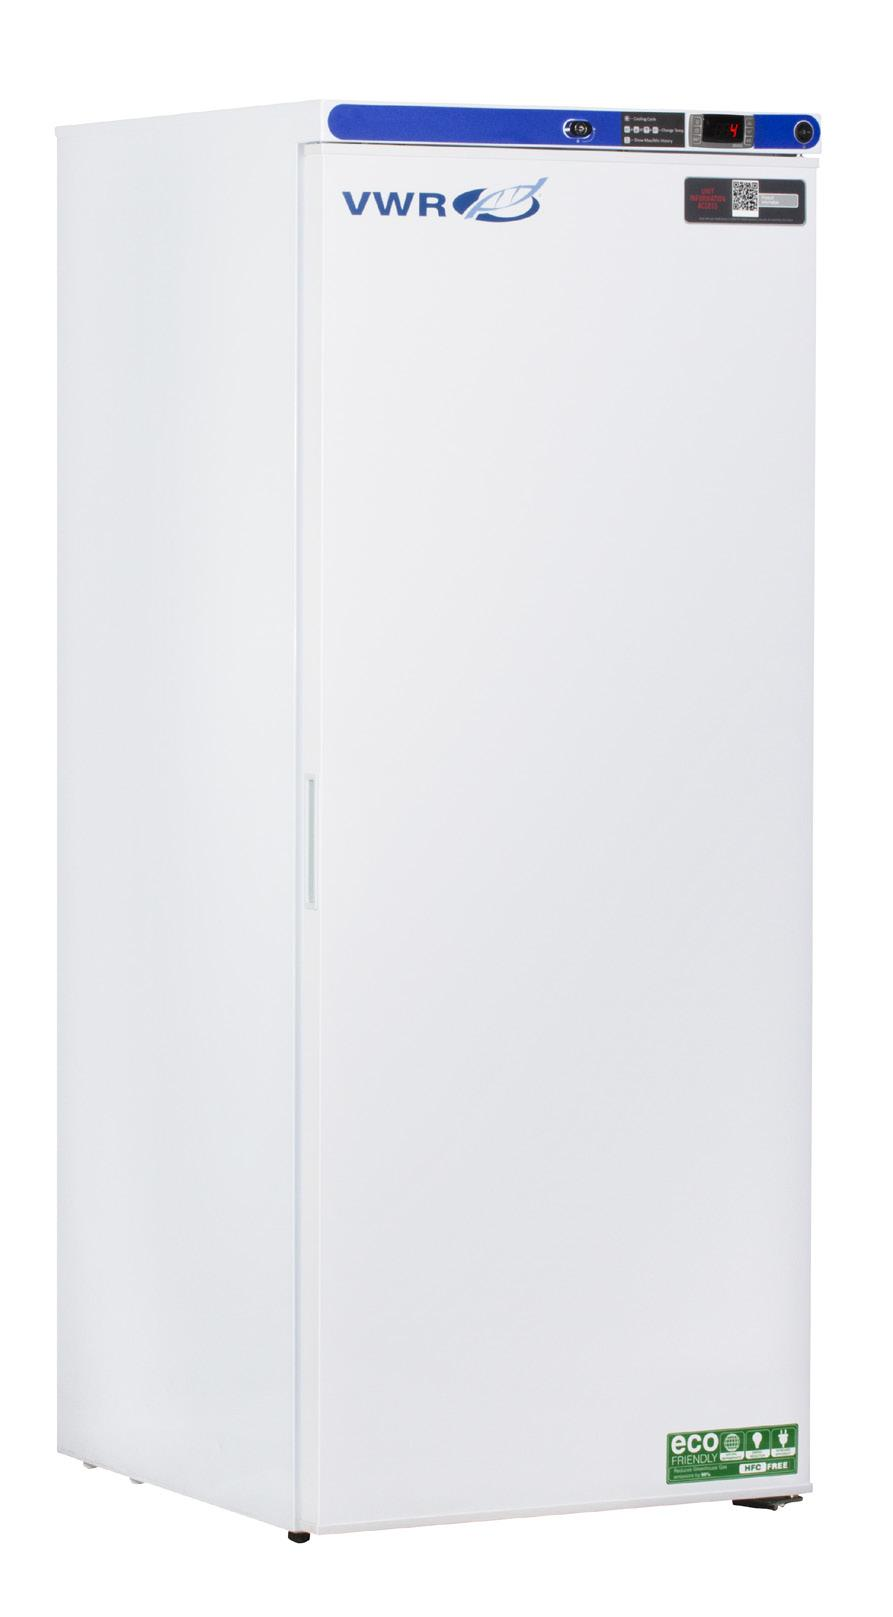 VWR SERIES VWR COMPACT LABORATORY REFRIGERATORS 1 to 10 C Uniform forced air Single glass and solid door configurations available 2/5 Warranty Two-year parts and labor warranty, five years on